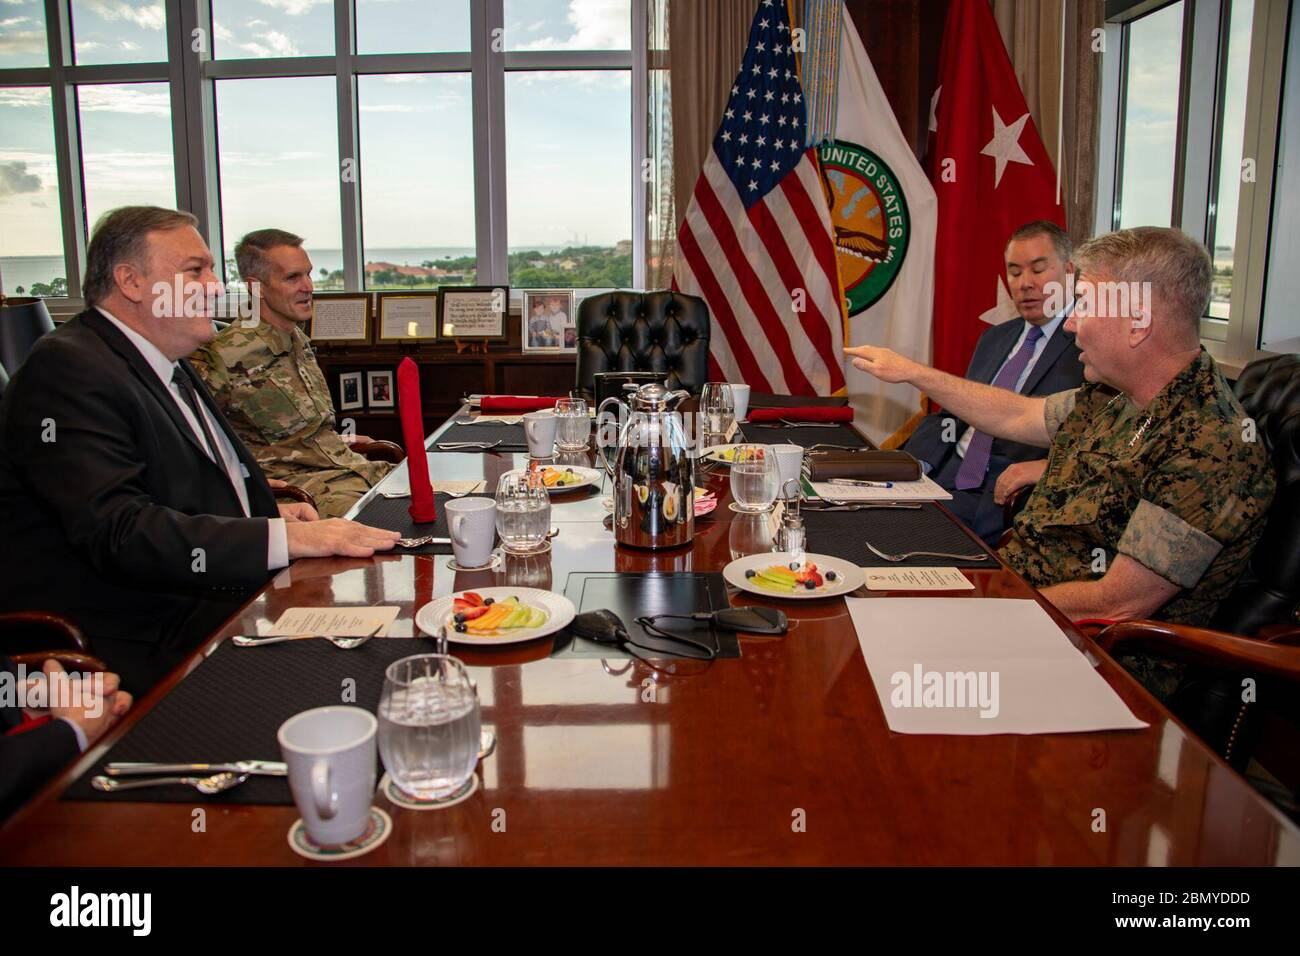 Secretary Pompeo Attends a Working Breakfast  With CENTCOM & SOCOM Commanders U.S. Secretary of State Michael R. Pompeo attends a working breakfast at the United States Central Command and the United States Special Operations Command at MacDill Air Force Base in Tampa, Florida, June 18, 2019. Stock Photo